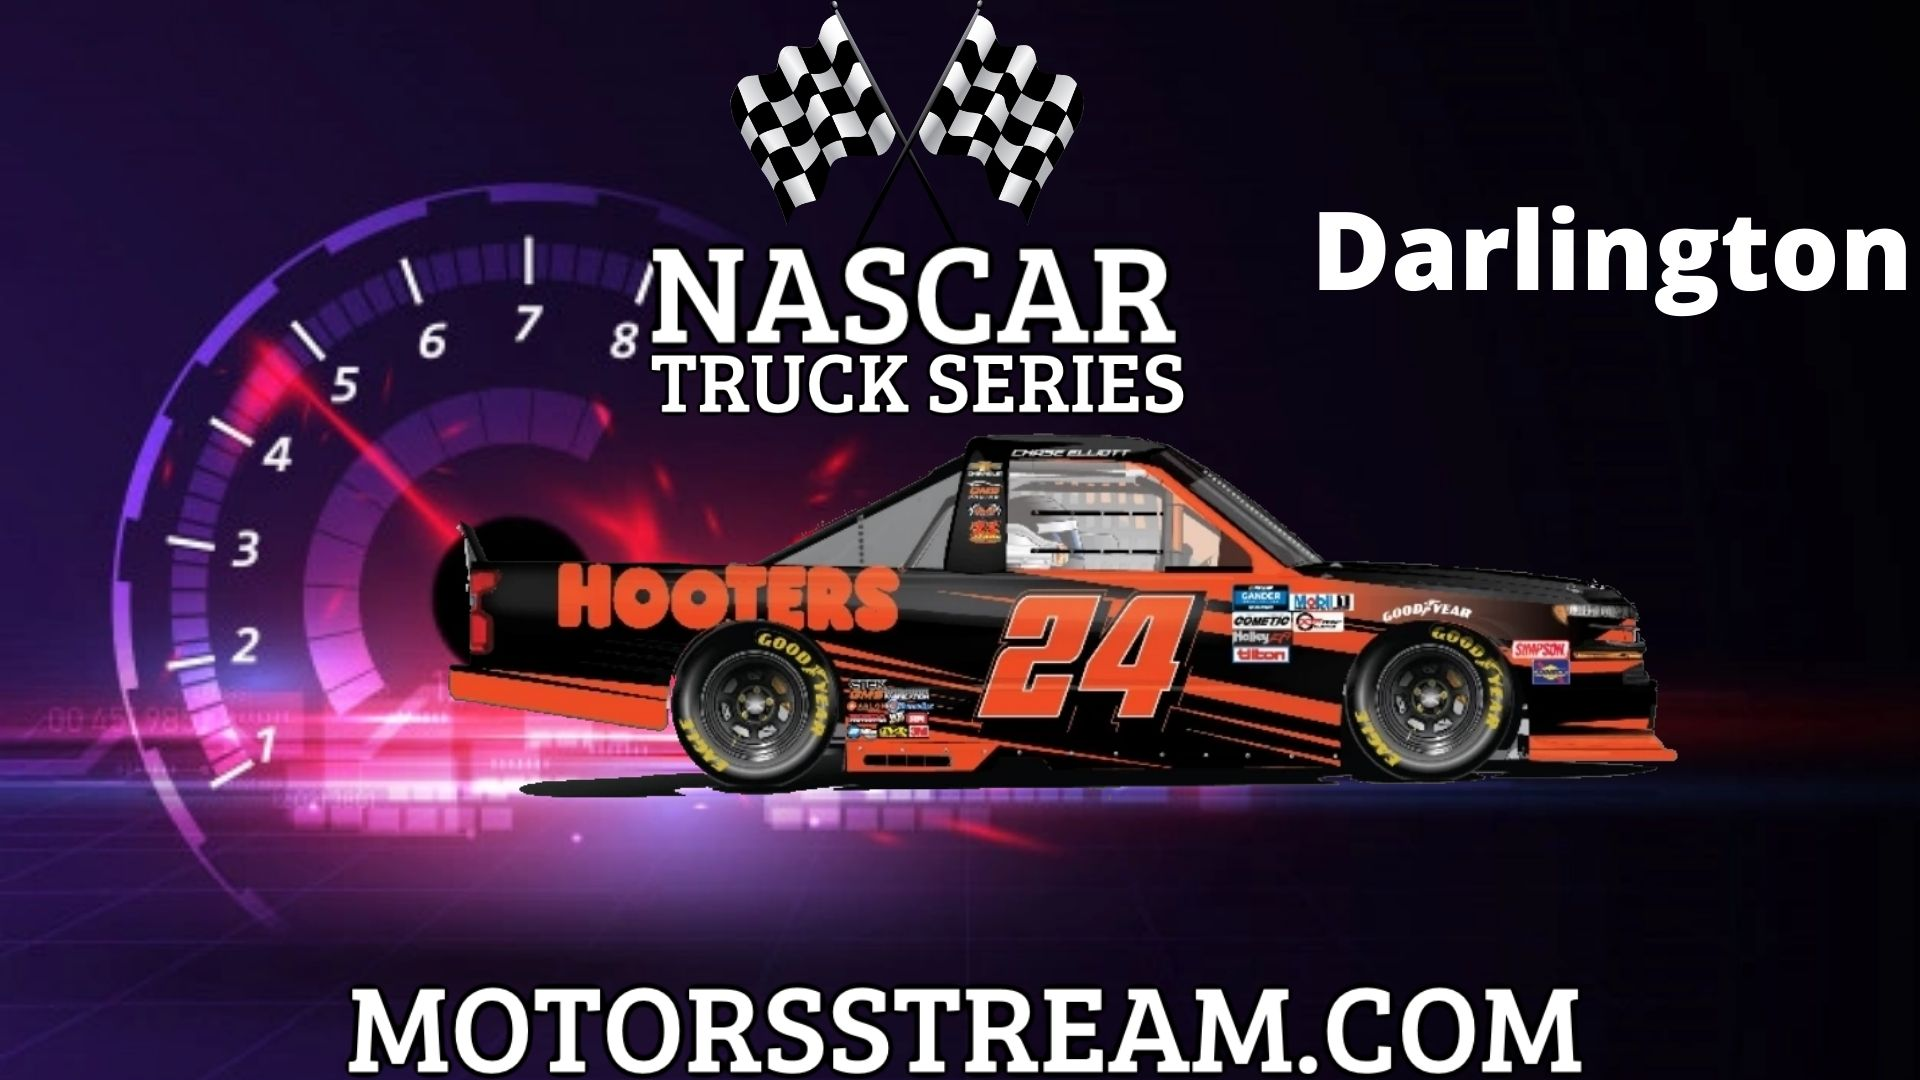 NASCAR Truck Series Race At Darlington Live Stream | Darlington 2021